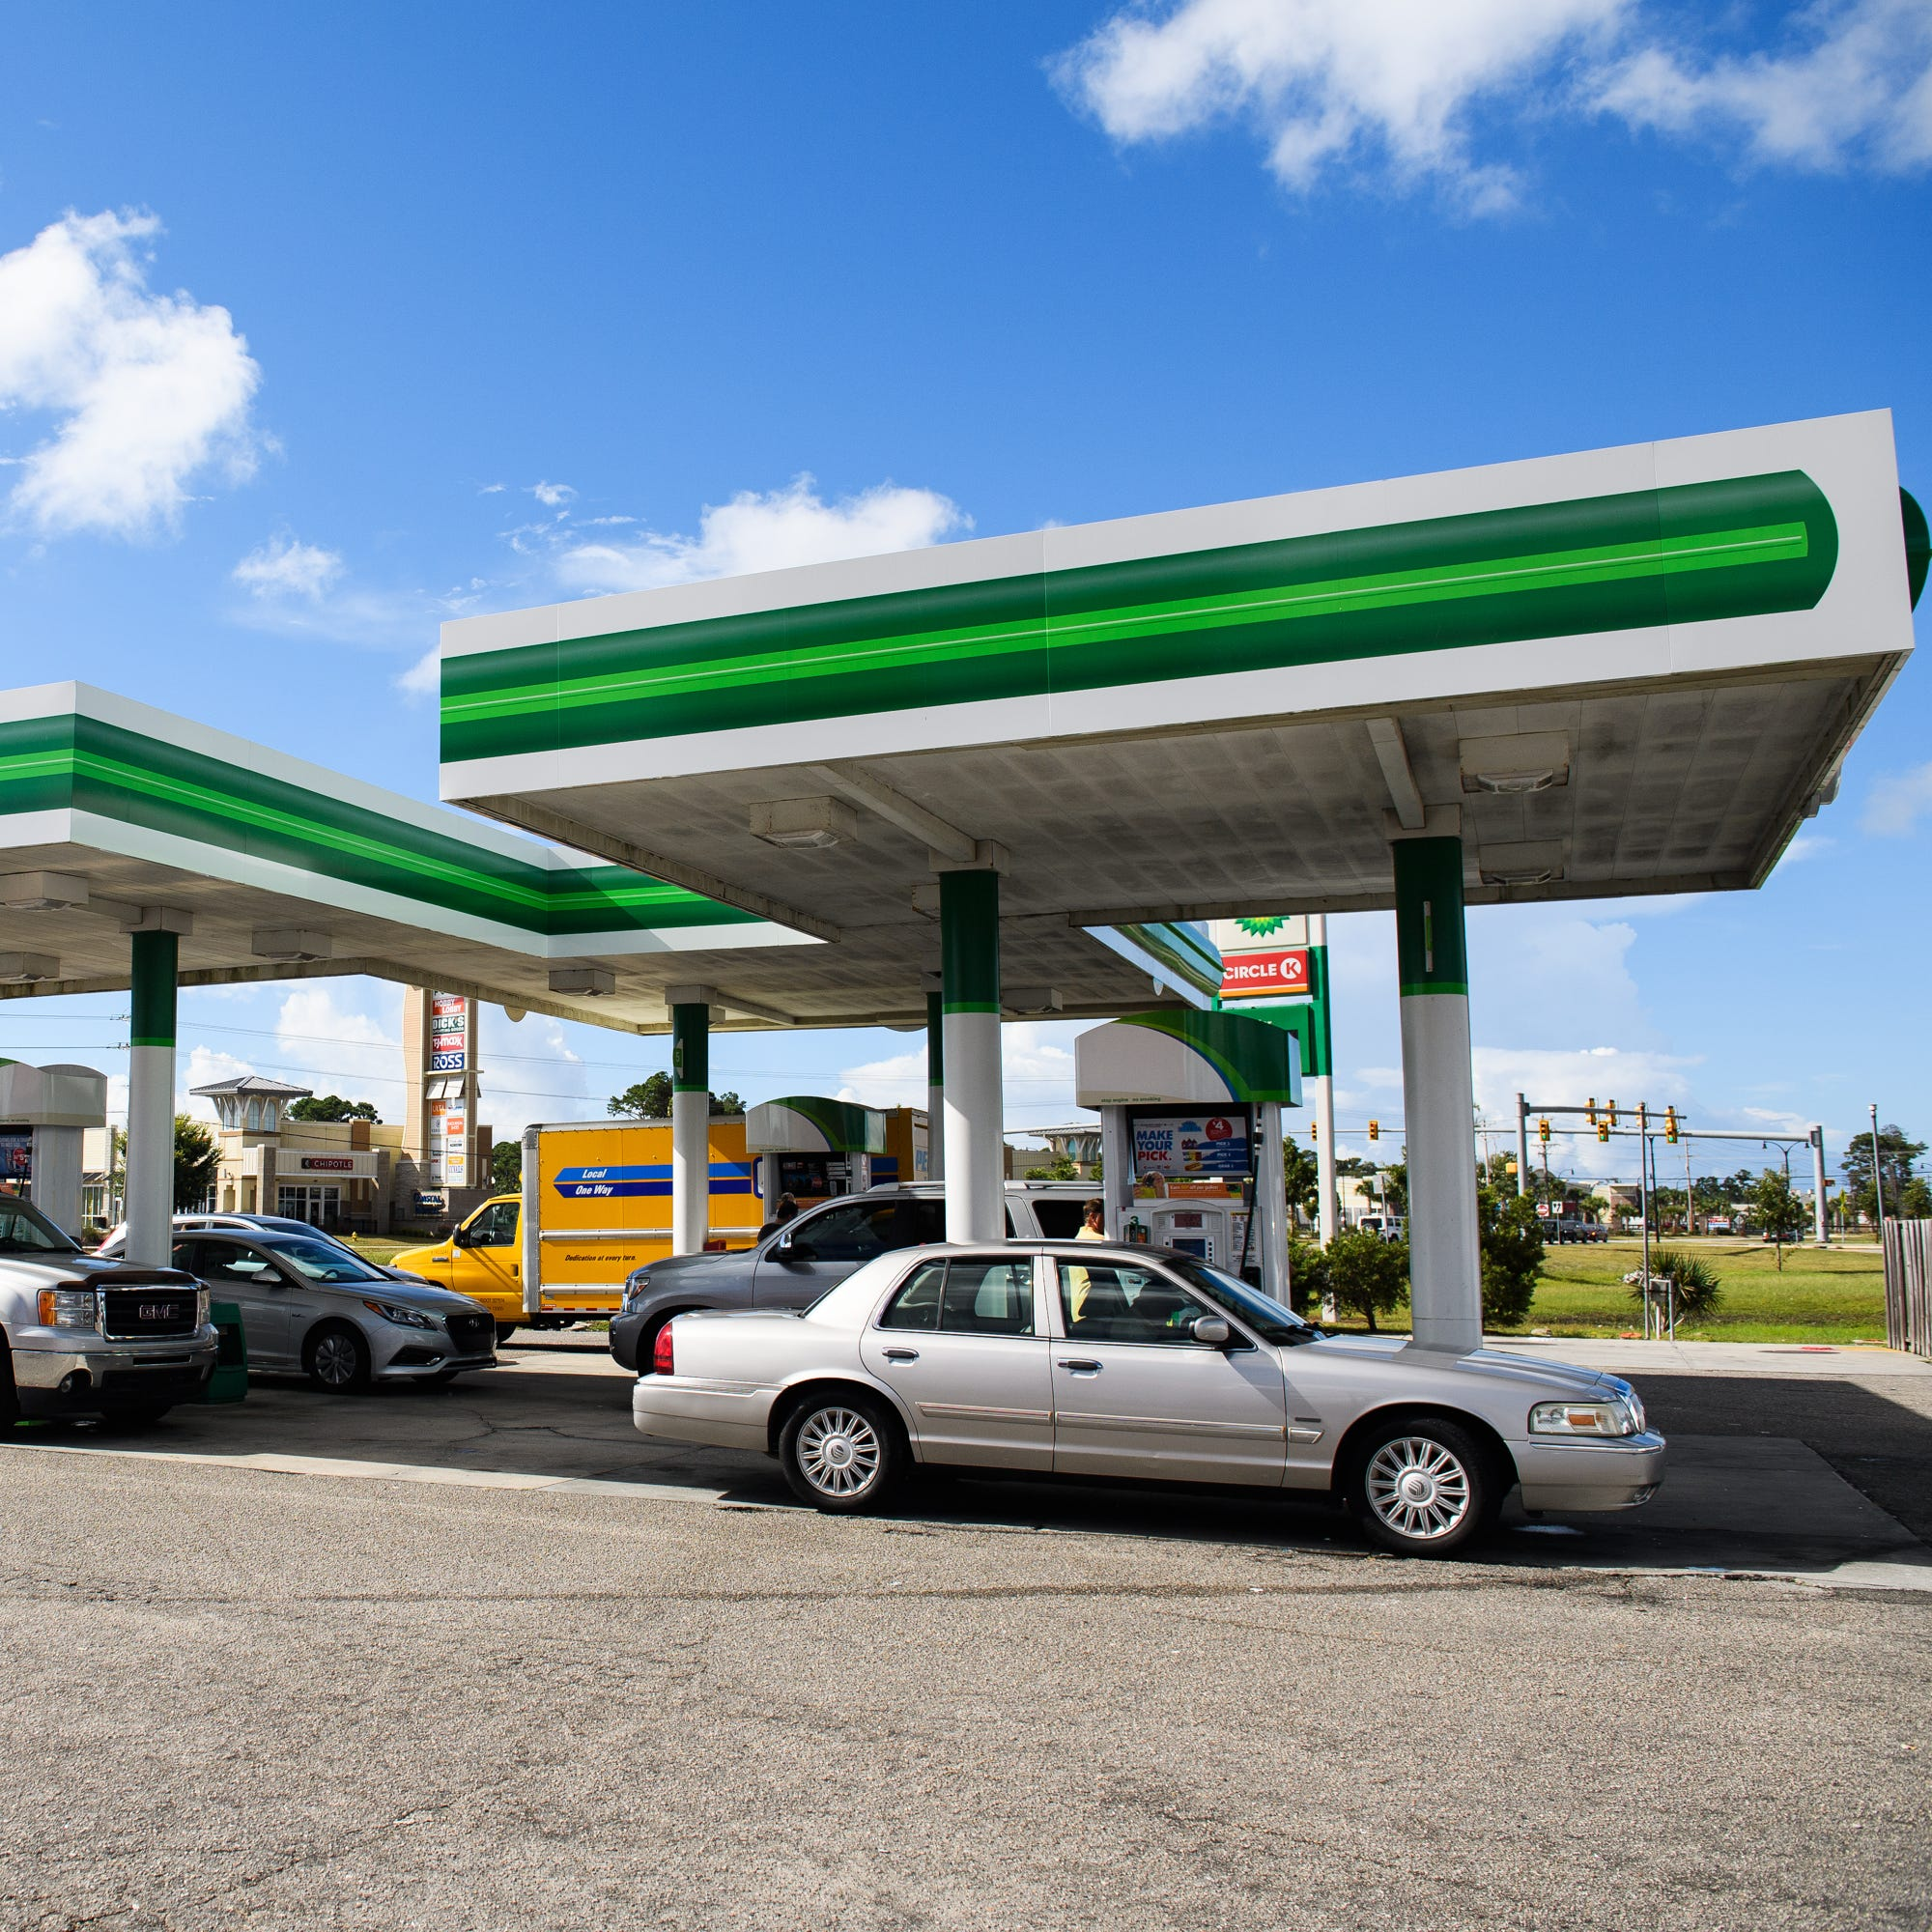 Hurricane Florence: How to report price gouging in South Carolina